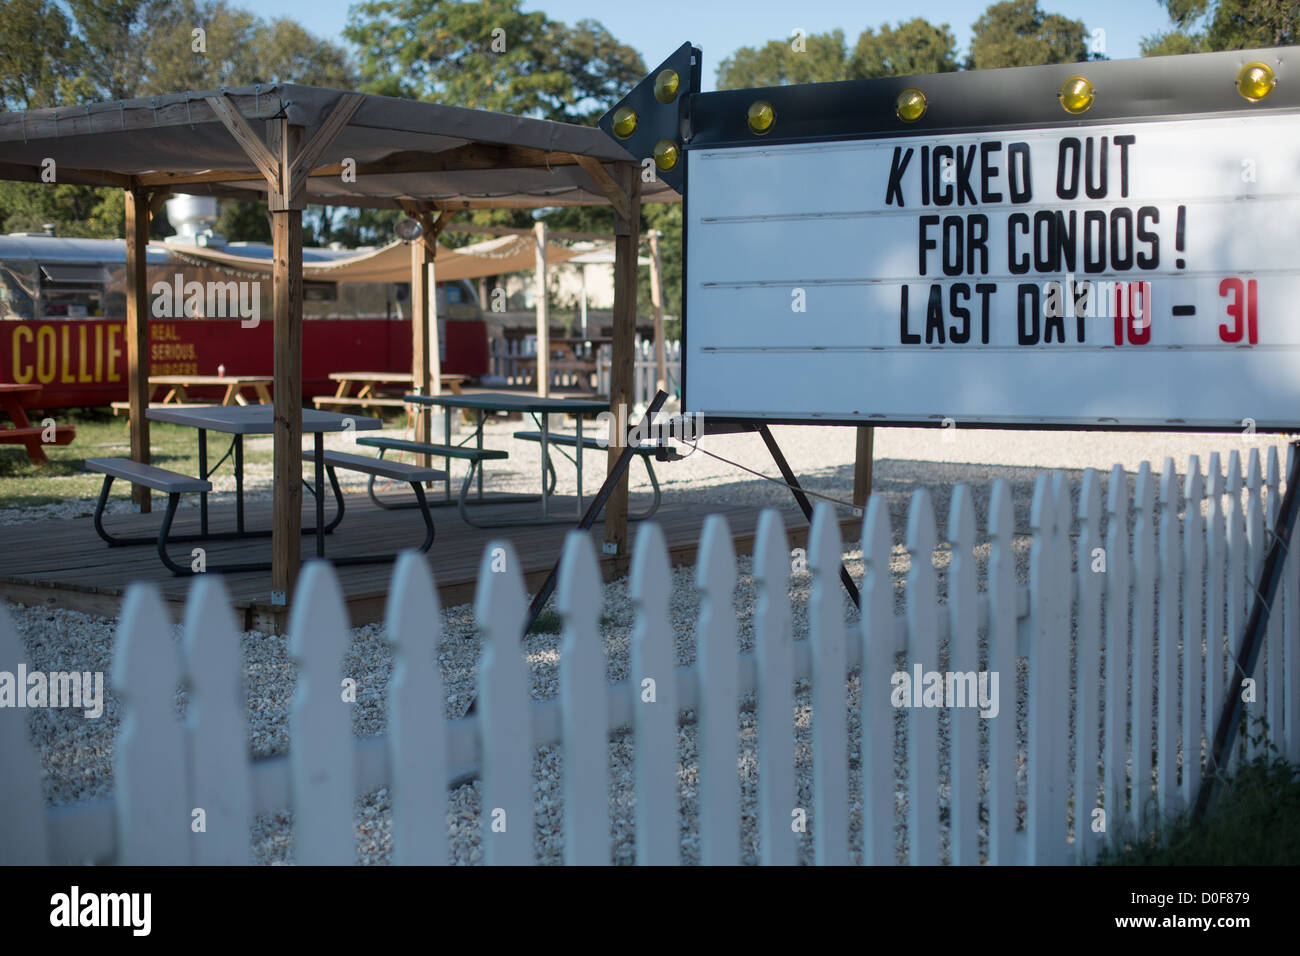 A sign reading 'Kicked Out For Condos! Last Day 10-31' in Austin, Texas on South Lamar Blvd - Stock Image